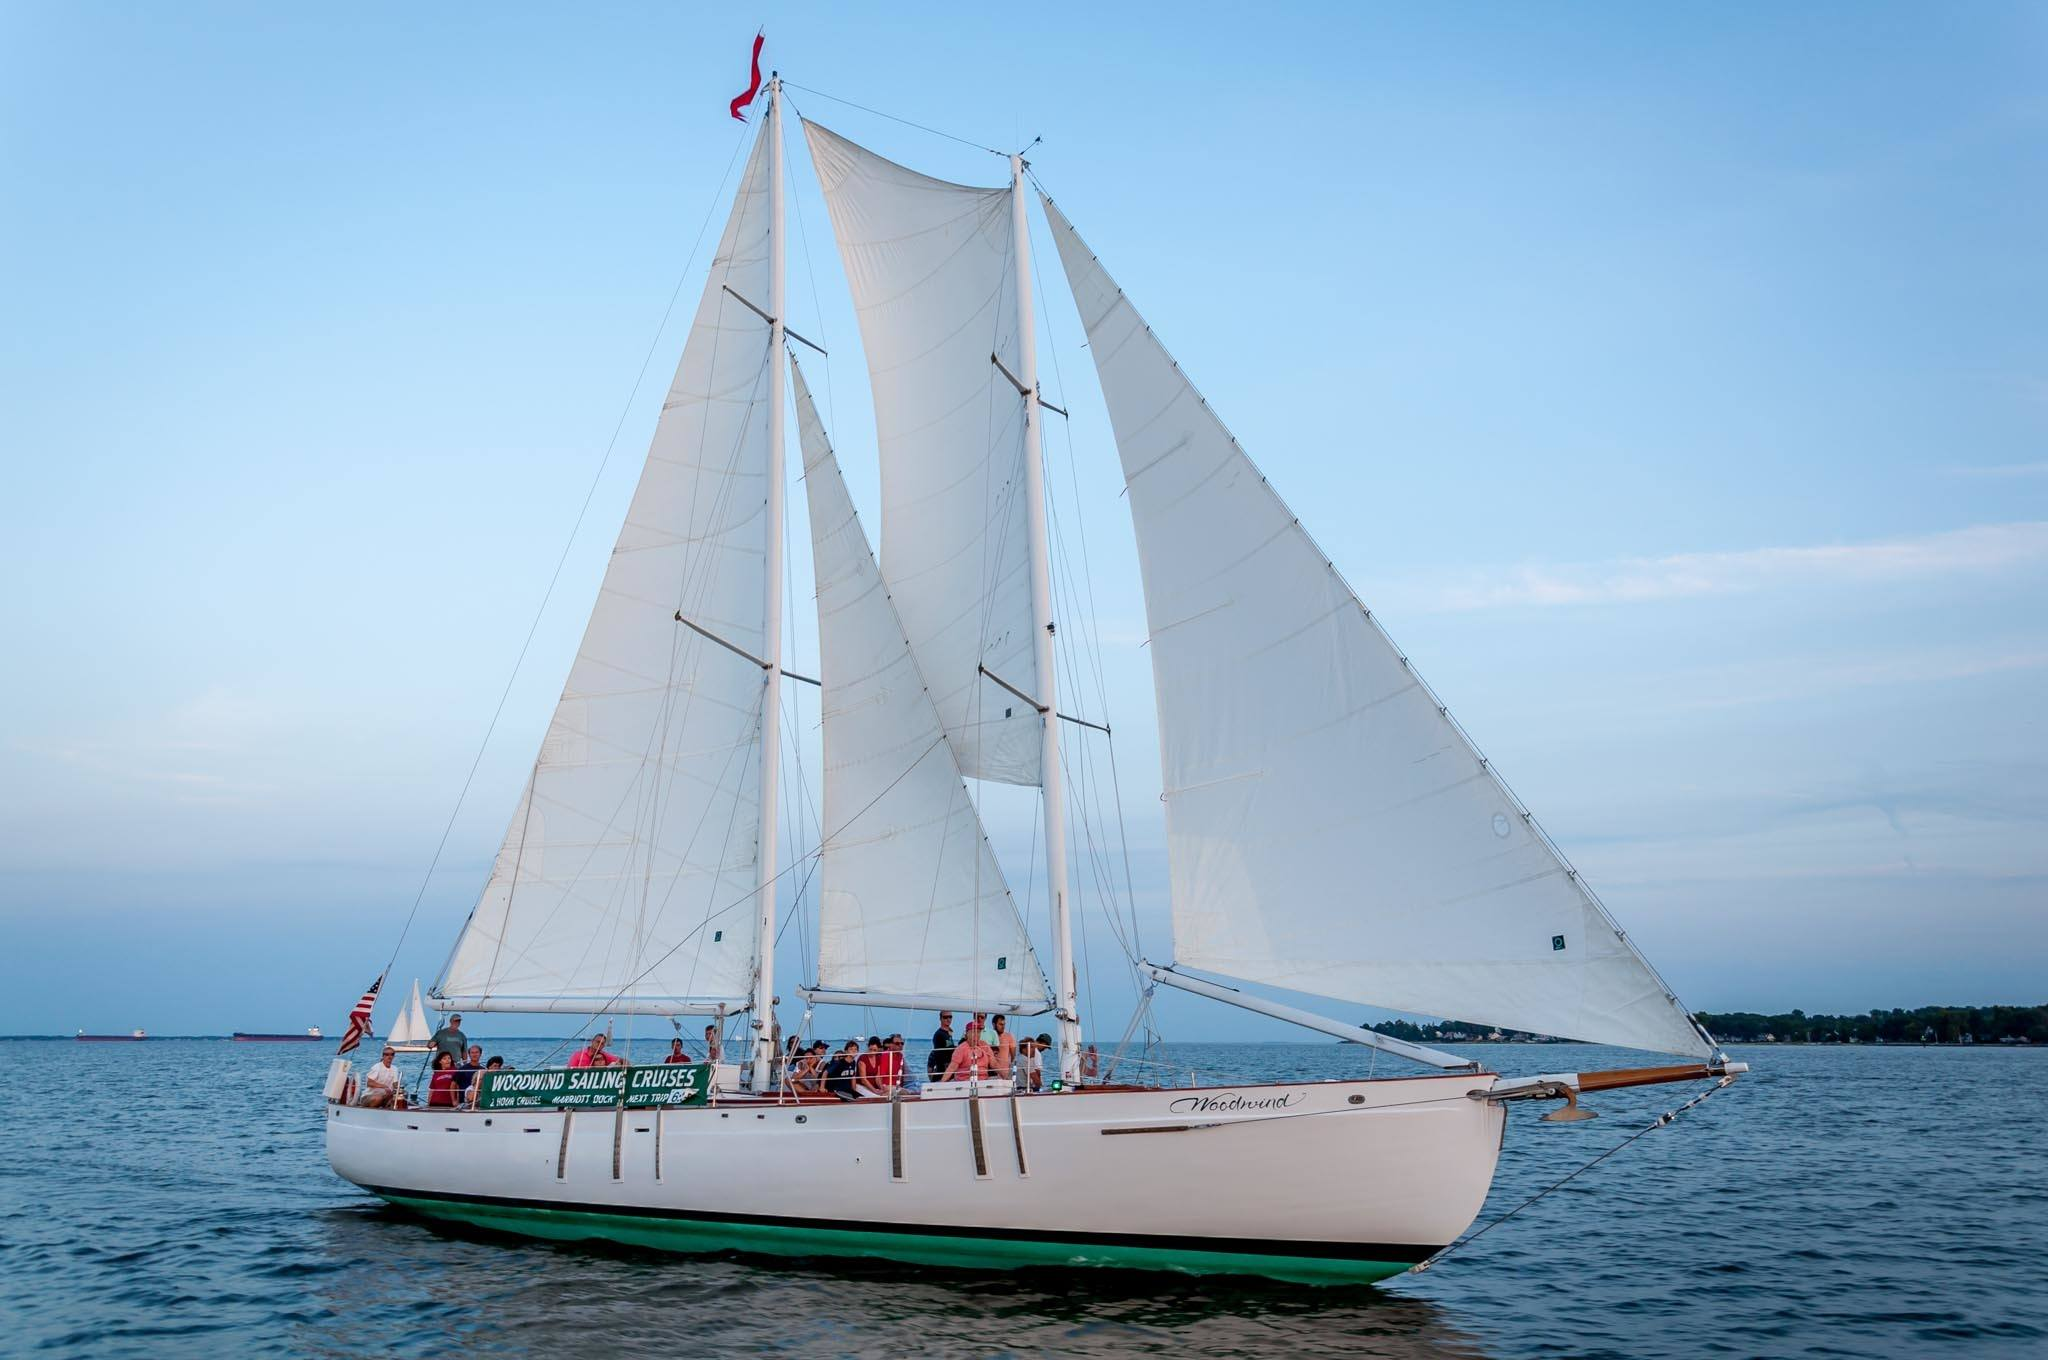 The Schooner Woodwind on the Chesapeake Bay in Annapolis